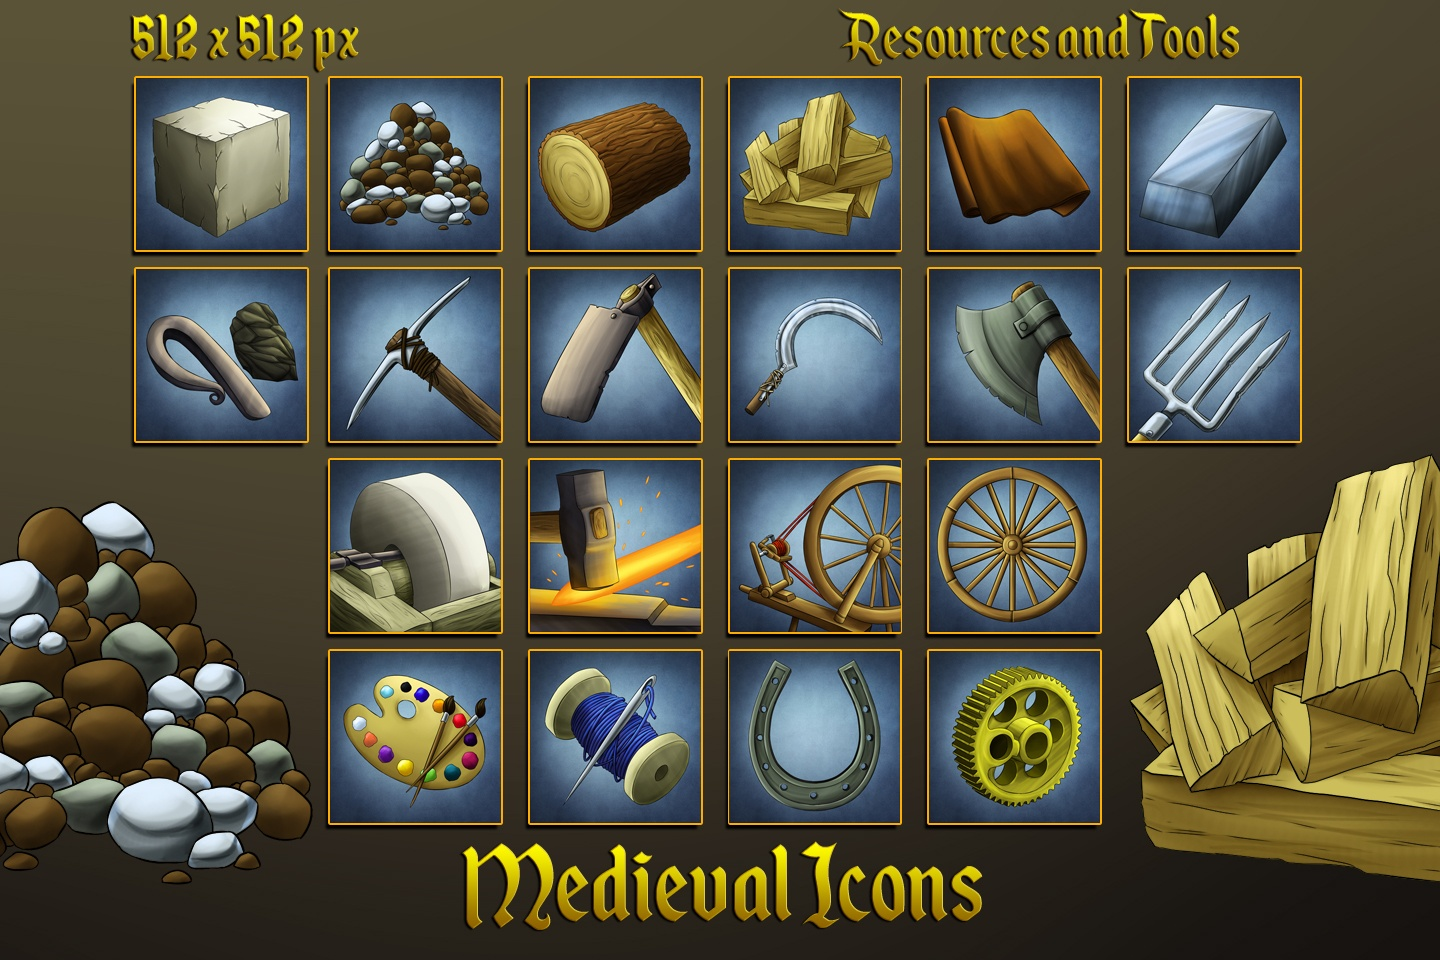 Medieval Icons: Resources and Tools